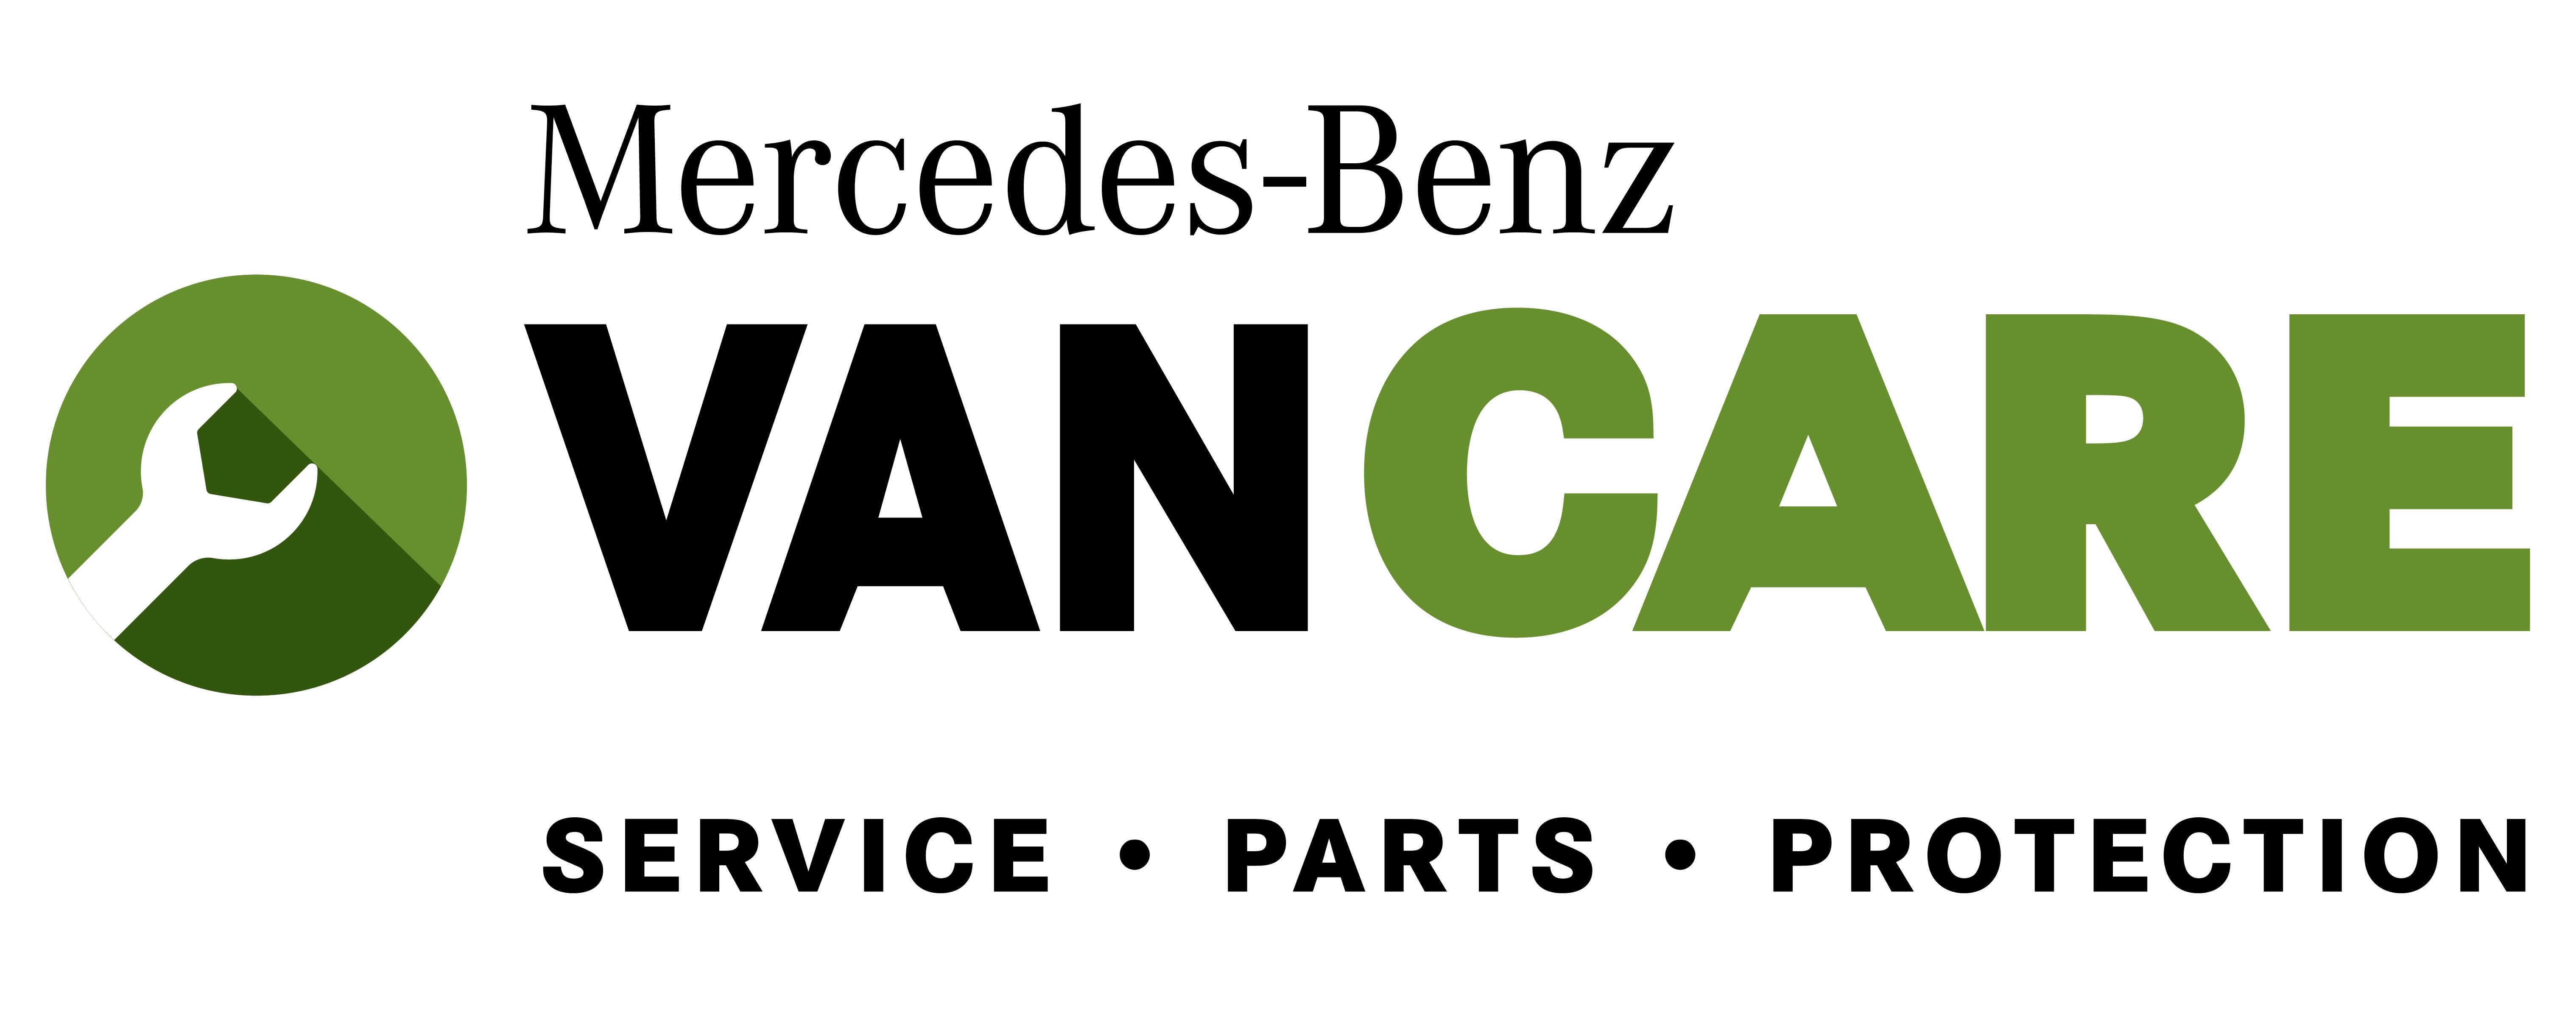 Mercedes benz vancare express mercedes benz of baton rouge for Mercedes benz baton rouge service